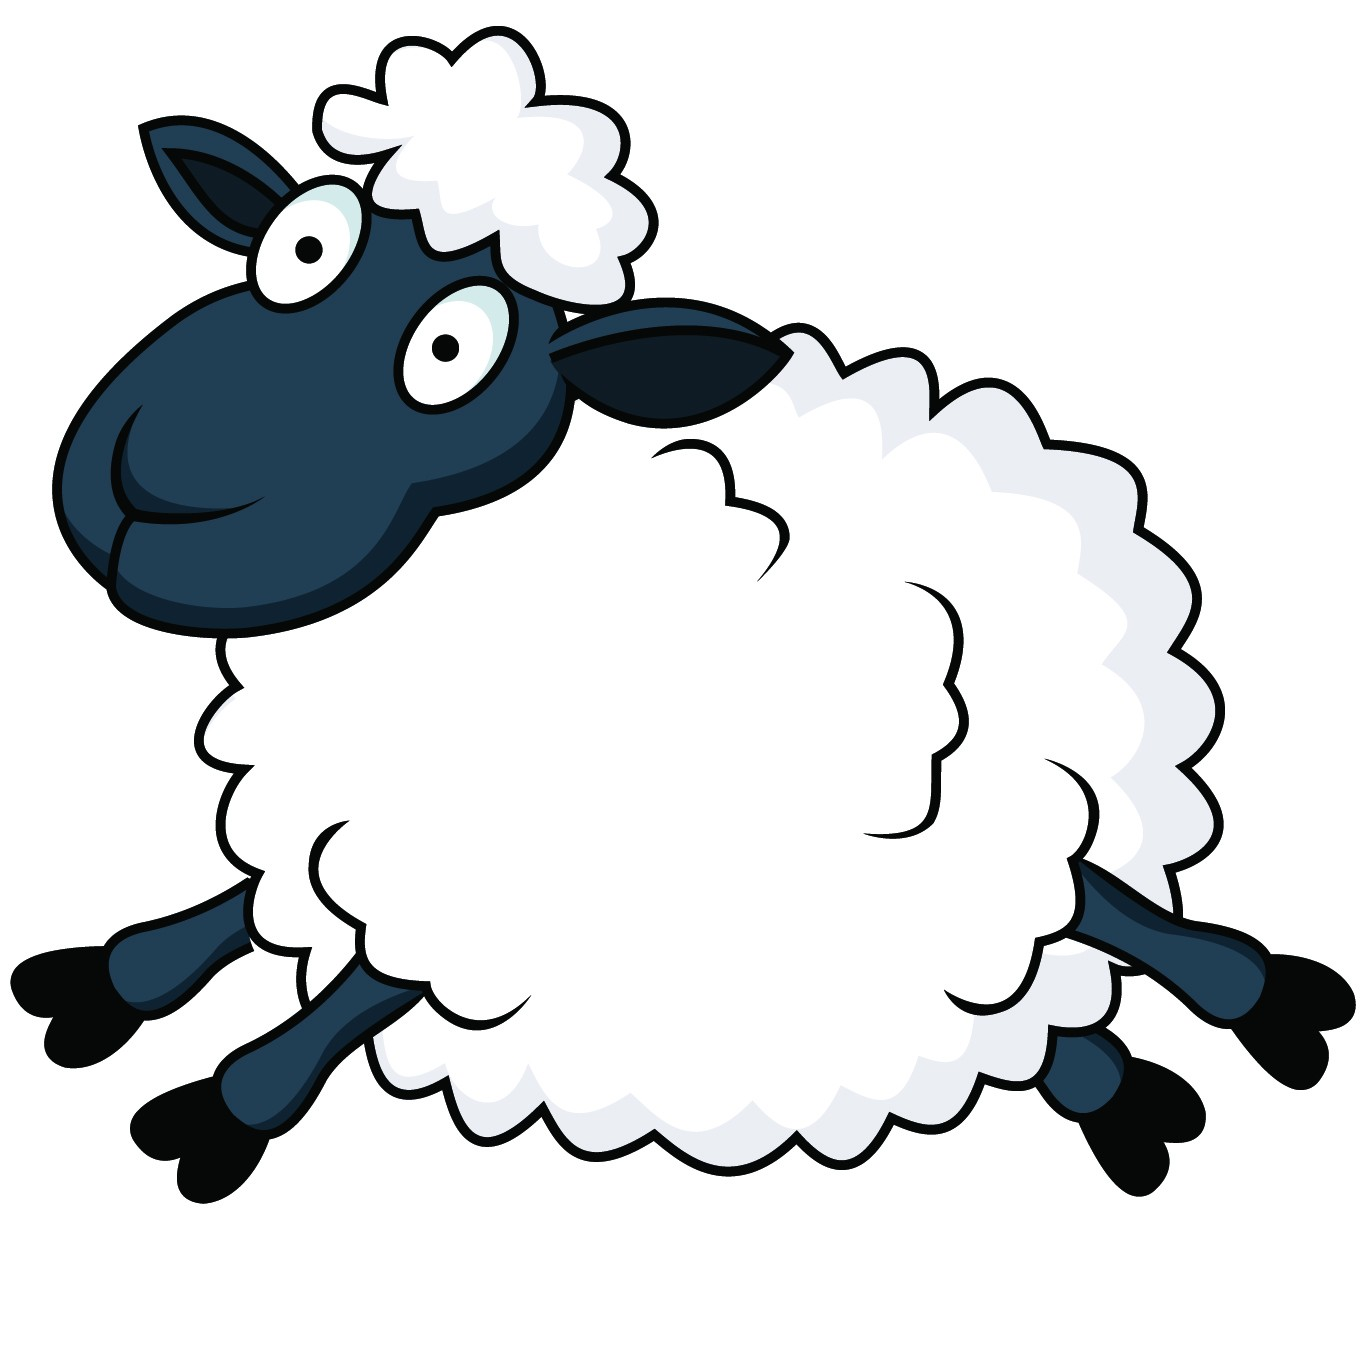 1366x1345 Cartoon Sheep Funny Eid Ul Adha Sheep In Cartoon Pictures